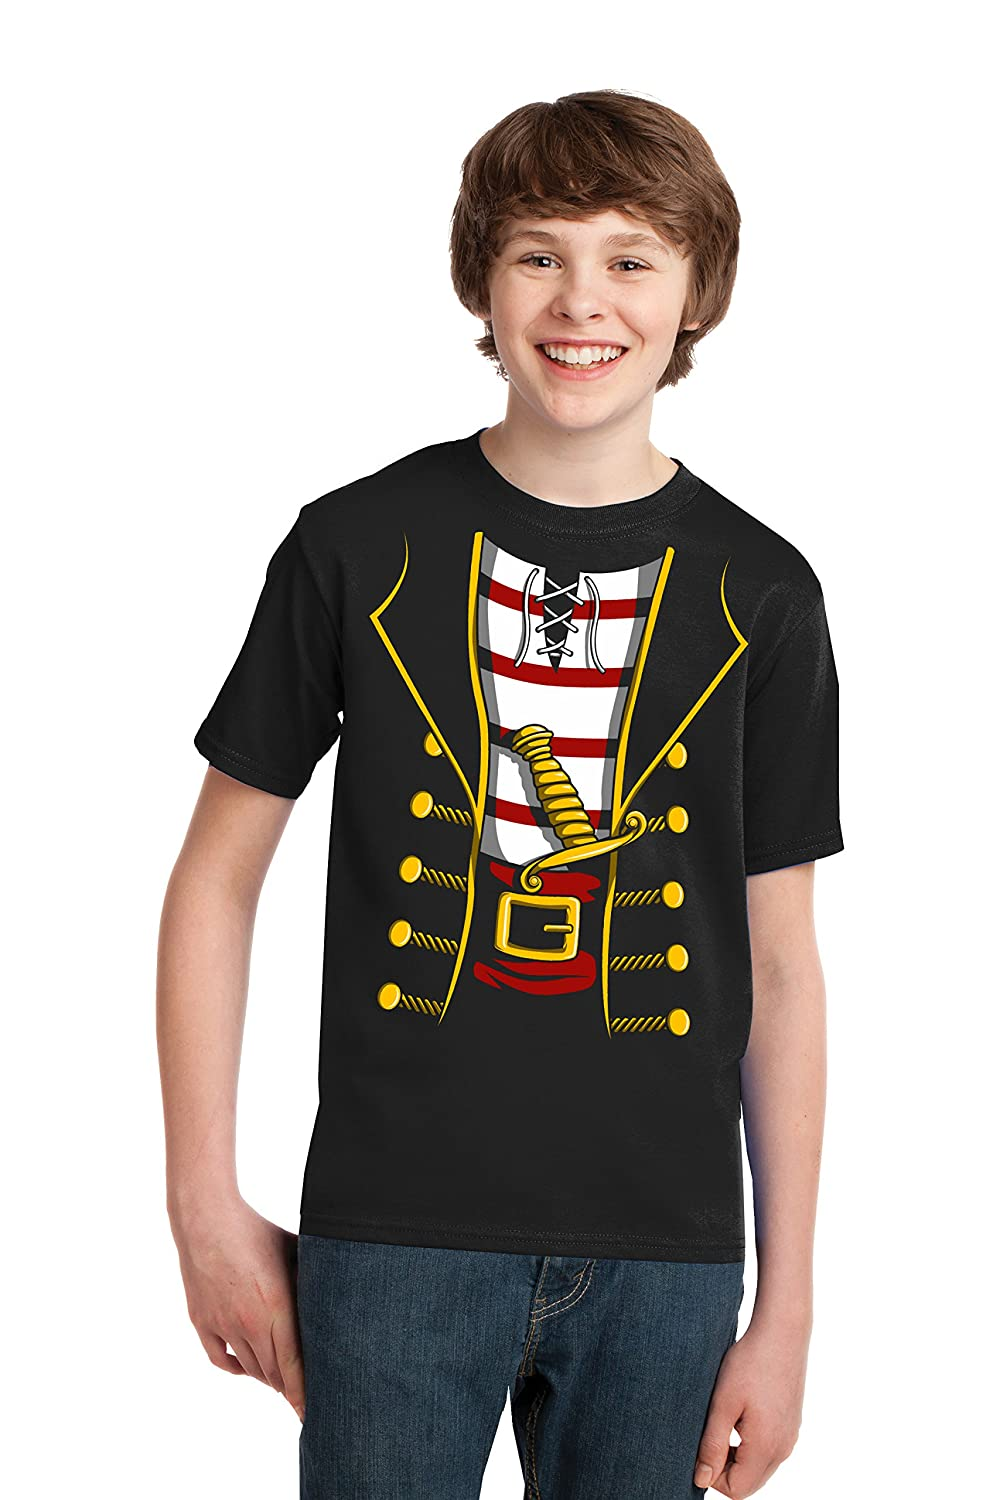 Pirate Buccanneer | Jumbo Print Novelty Halloween Costume Youth T-shirt Ann Arbor T-shirt Co. 0-big_pirate-youth